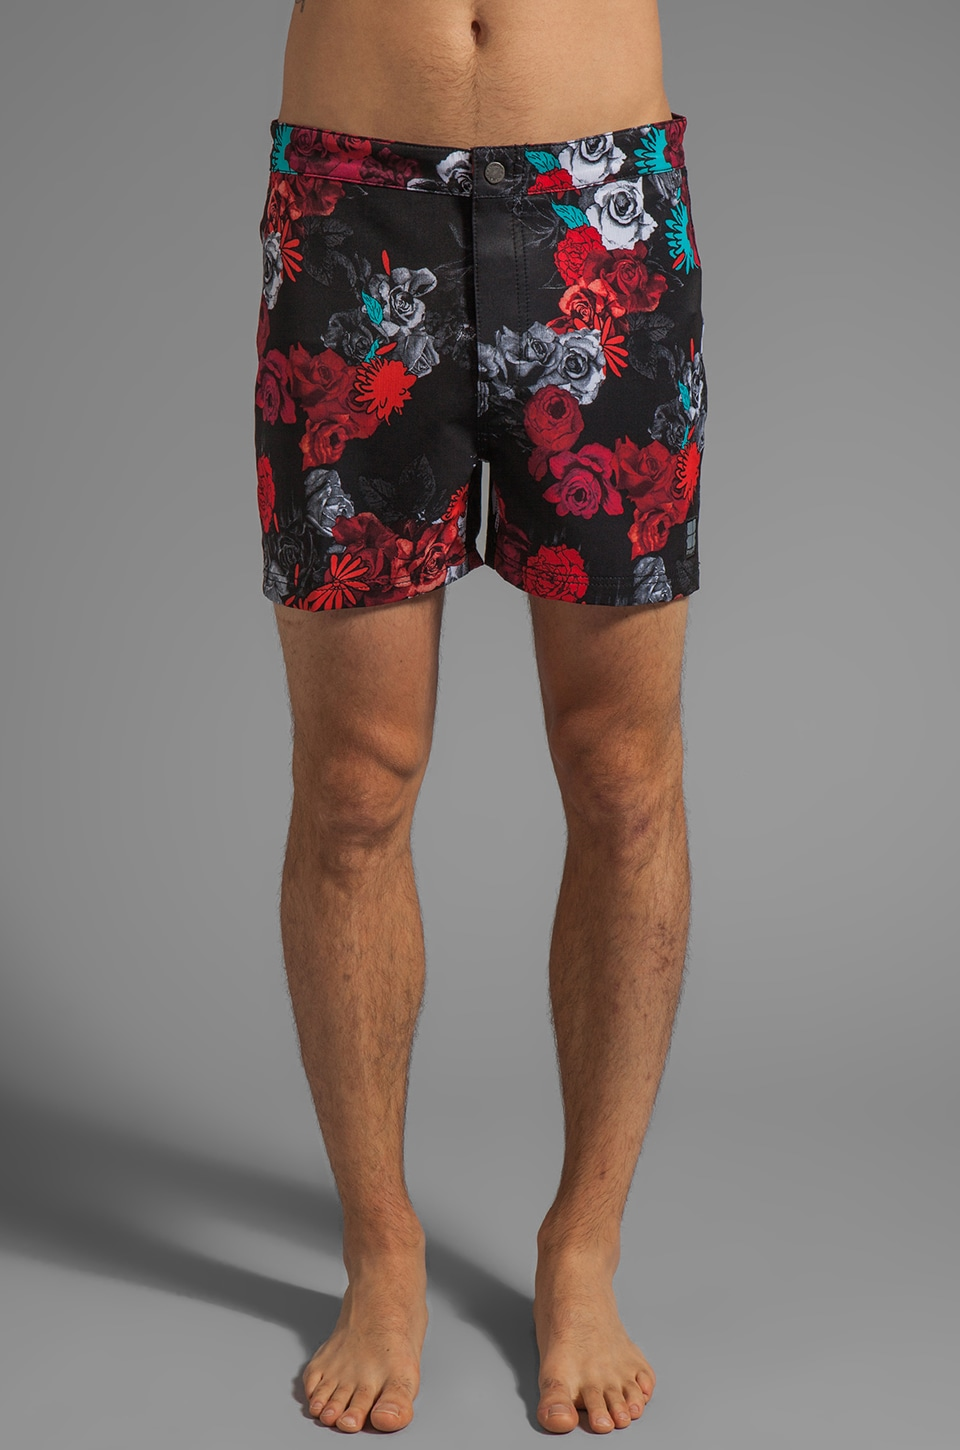 Insight Border Crossing Bunker Boardshort in Floyd Black